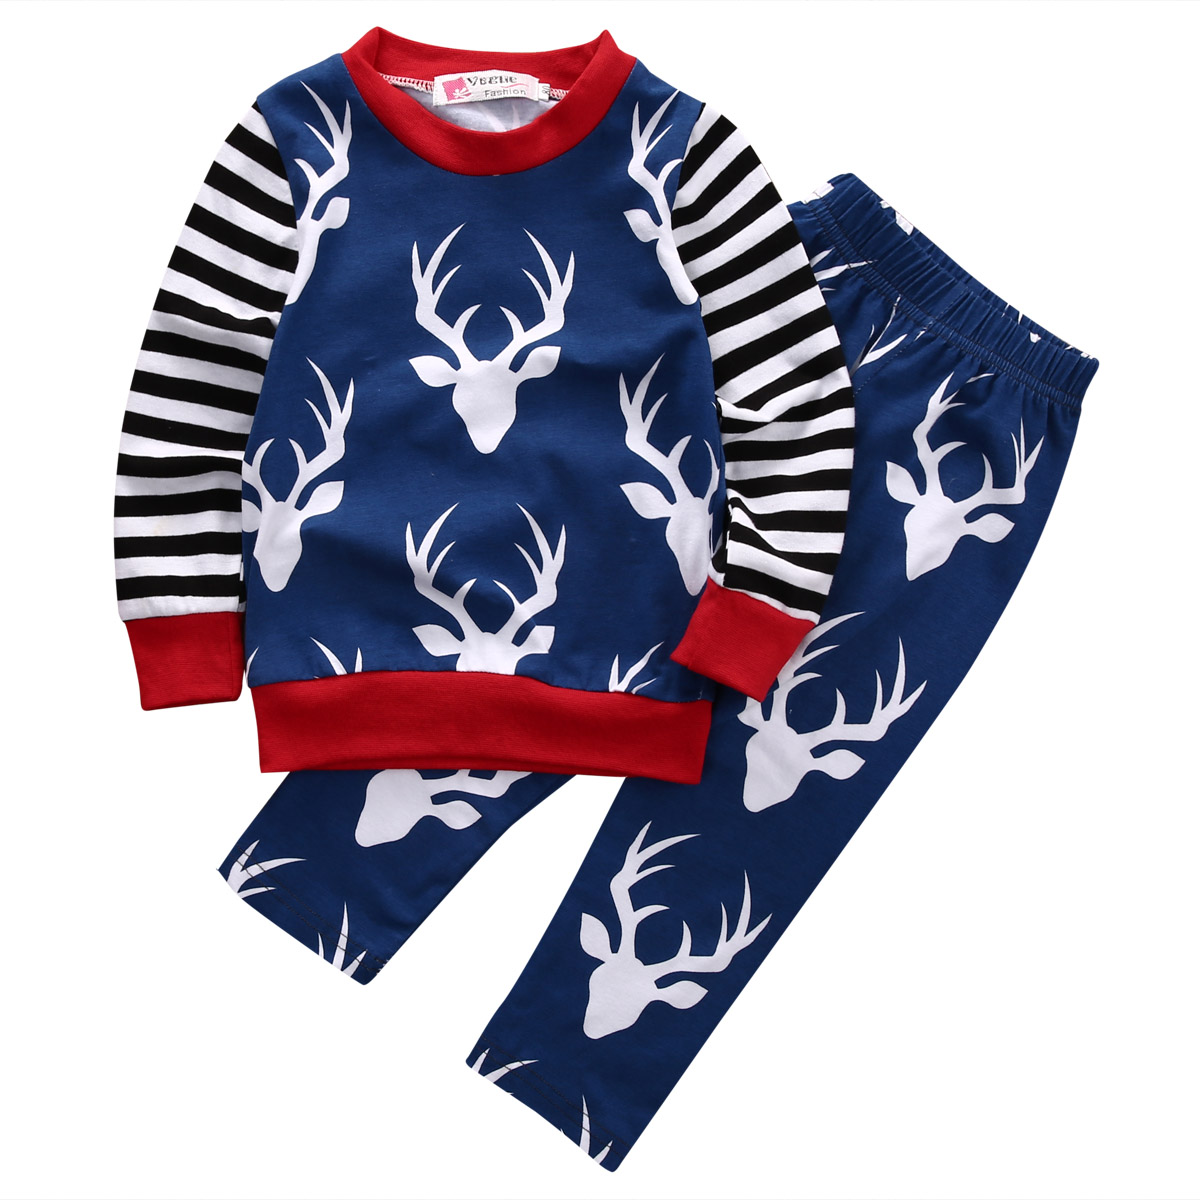 2 PCS Babies Deer Xmas Clothing Set Baby Kids Newborn Boy Clothes Set T shirt Tops